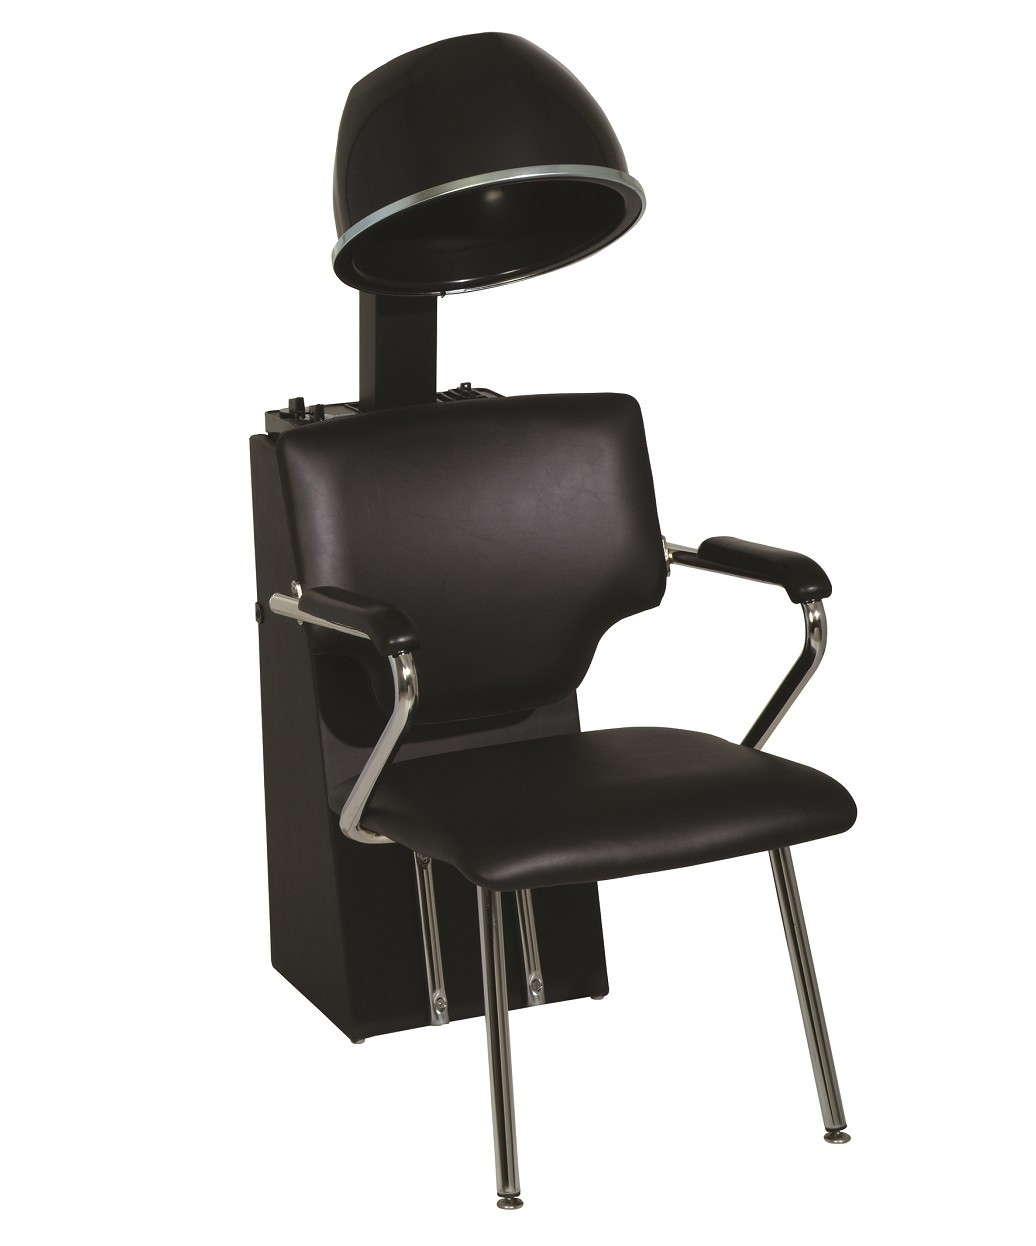 dryer chairs salon used wheel belvedere bl83 belle chair